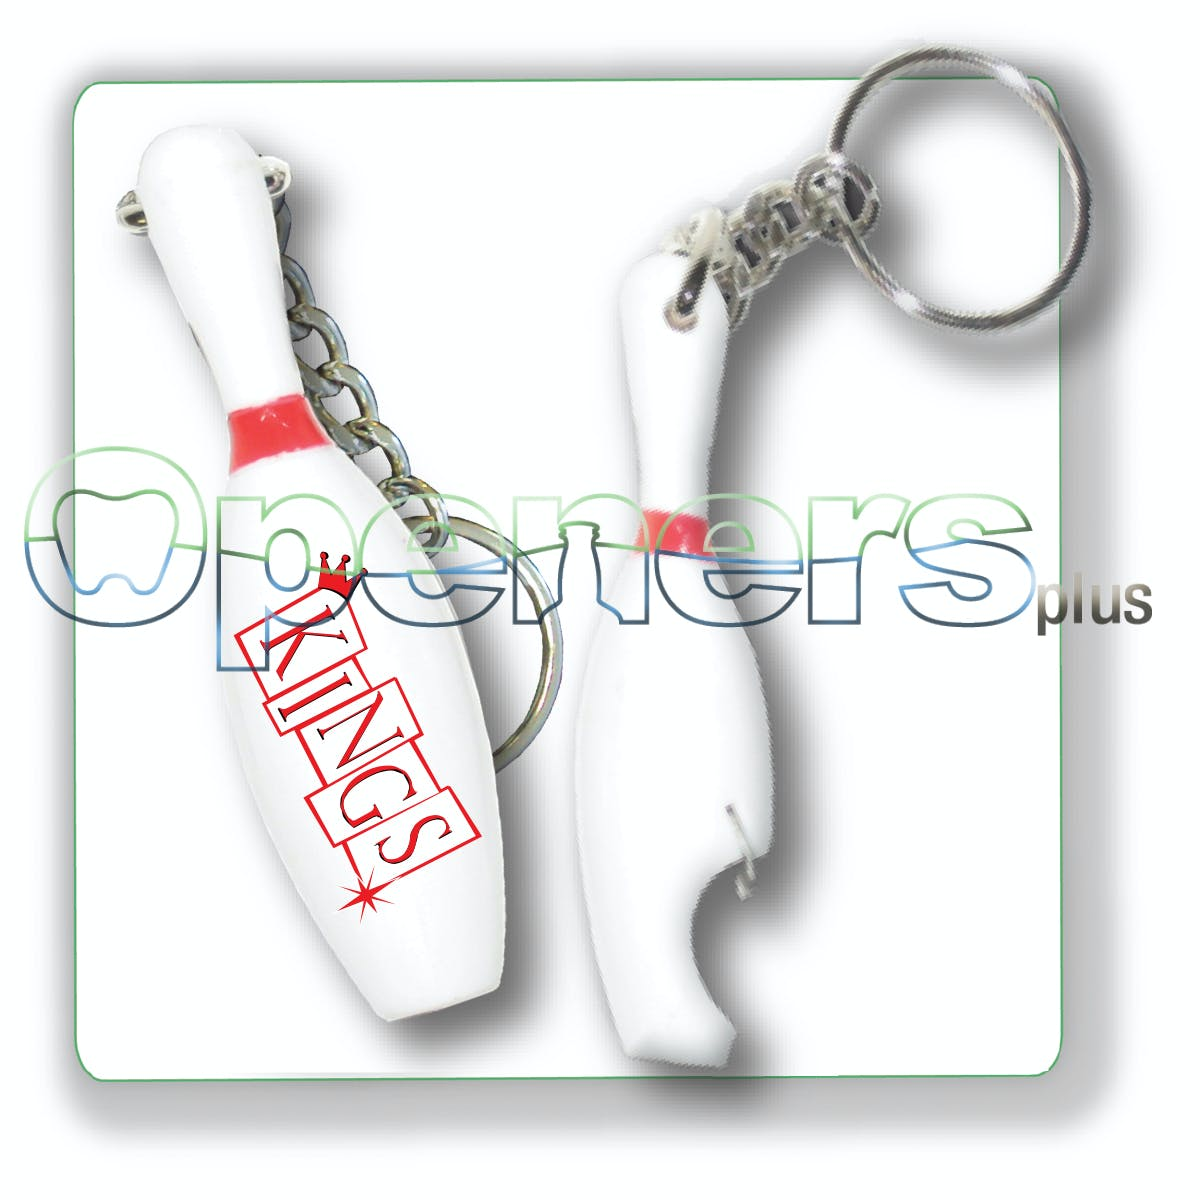 Bowling Pin opener Bottle opener sold by Openers Plus